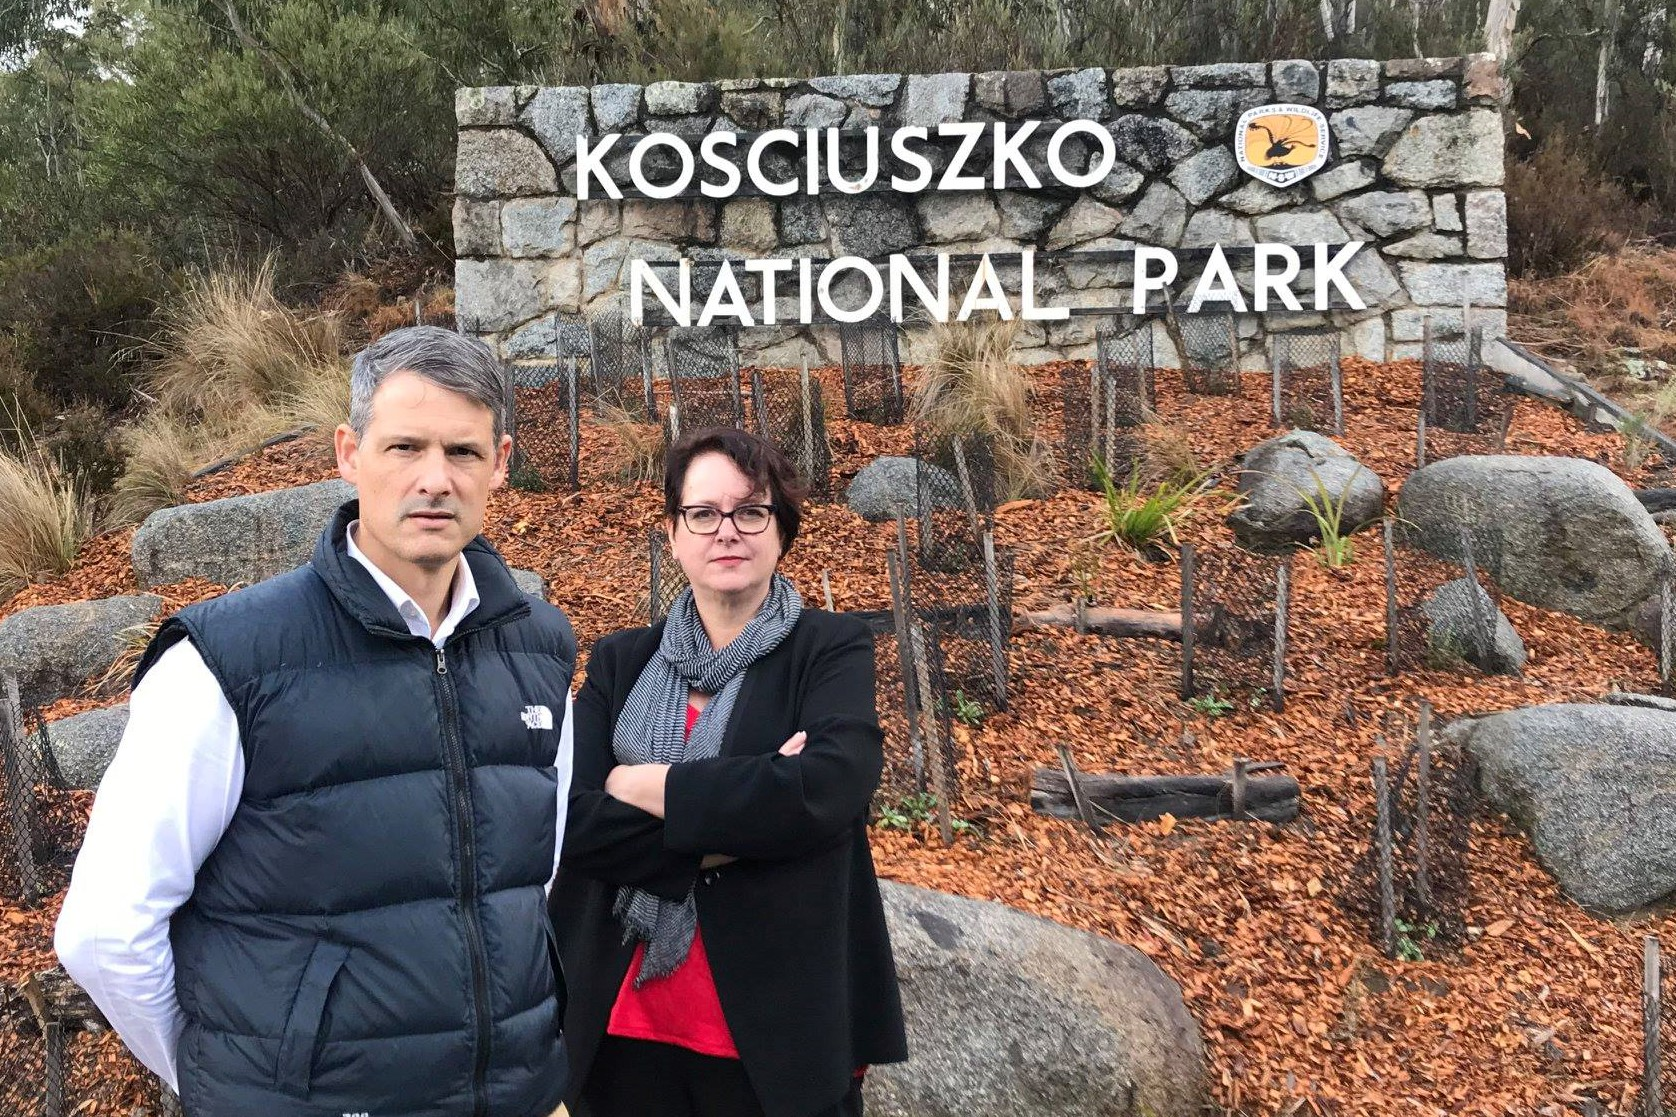 To save Kosciuszko National Park, Barilaro wild horse bill cannot be supported